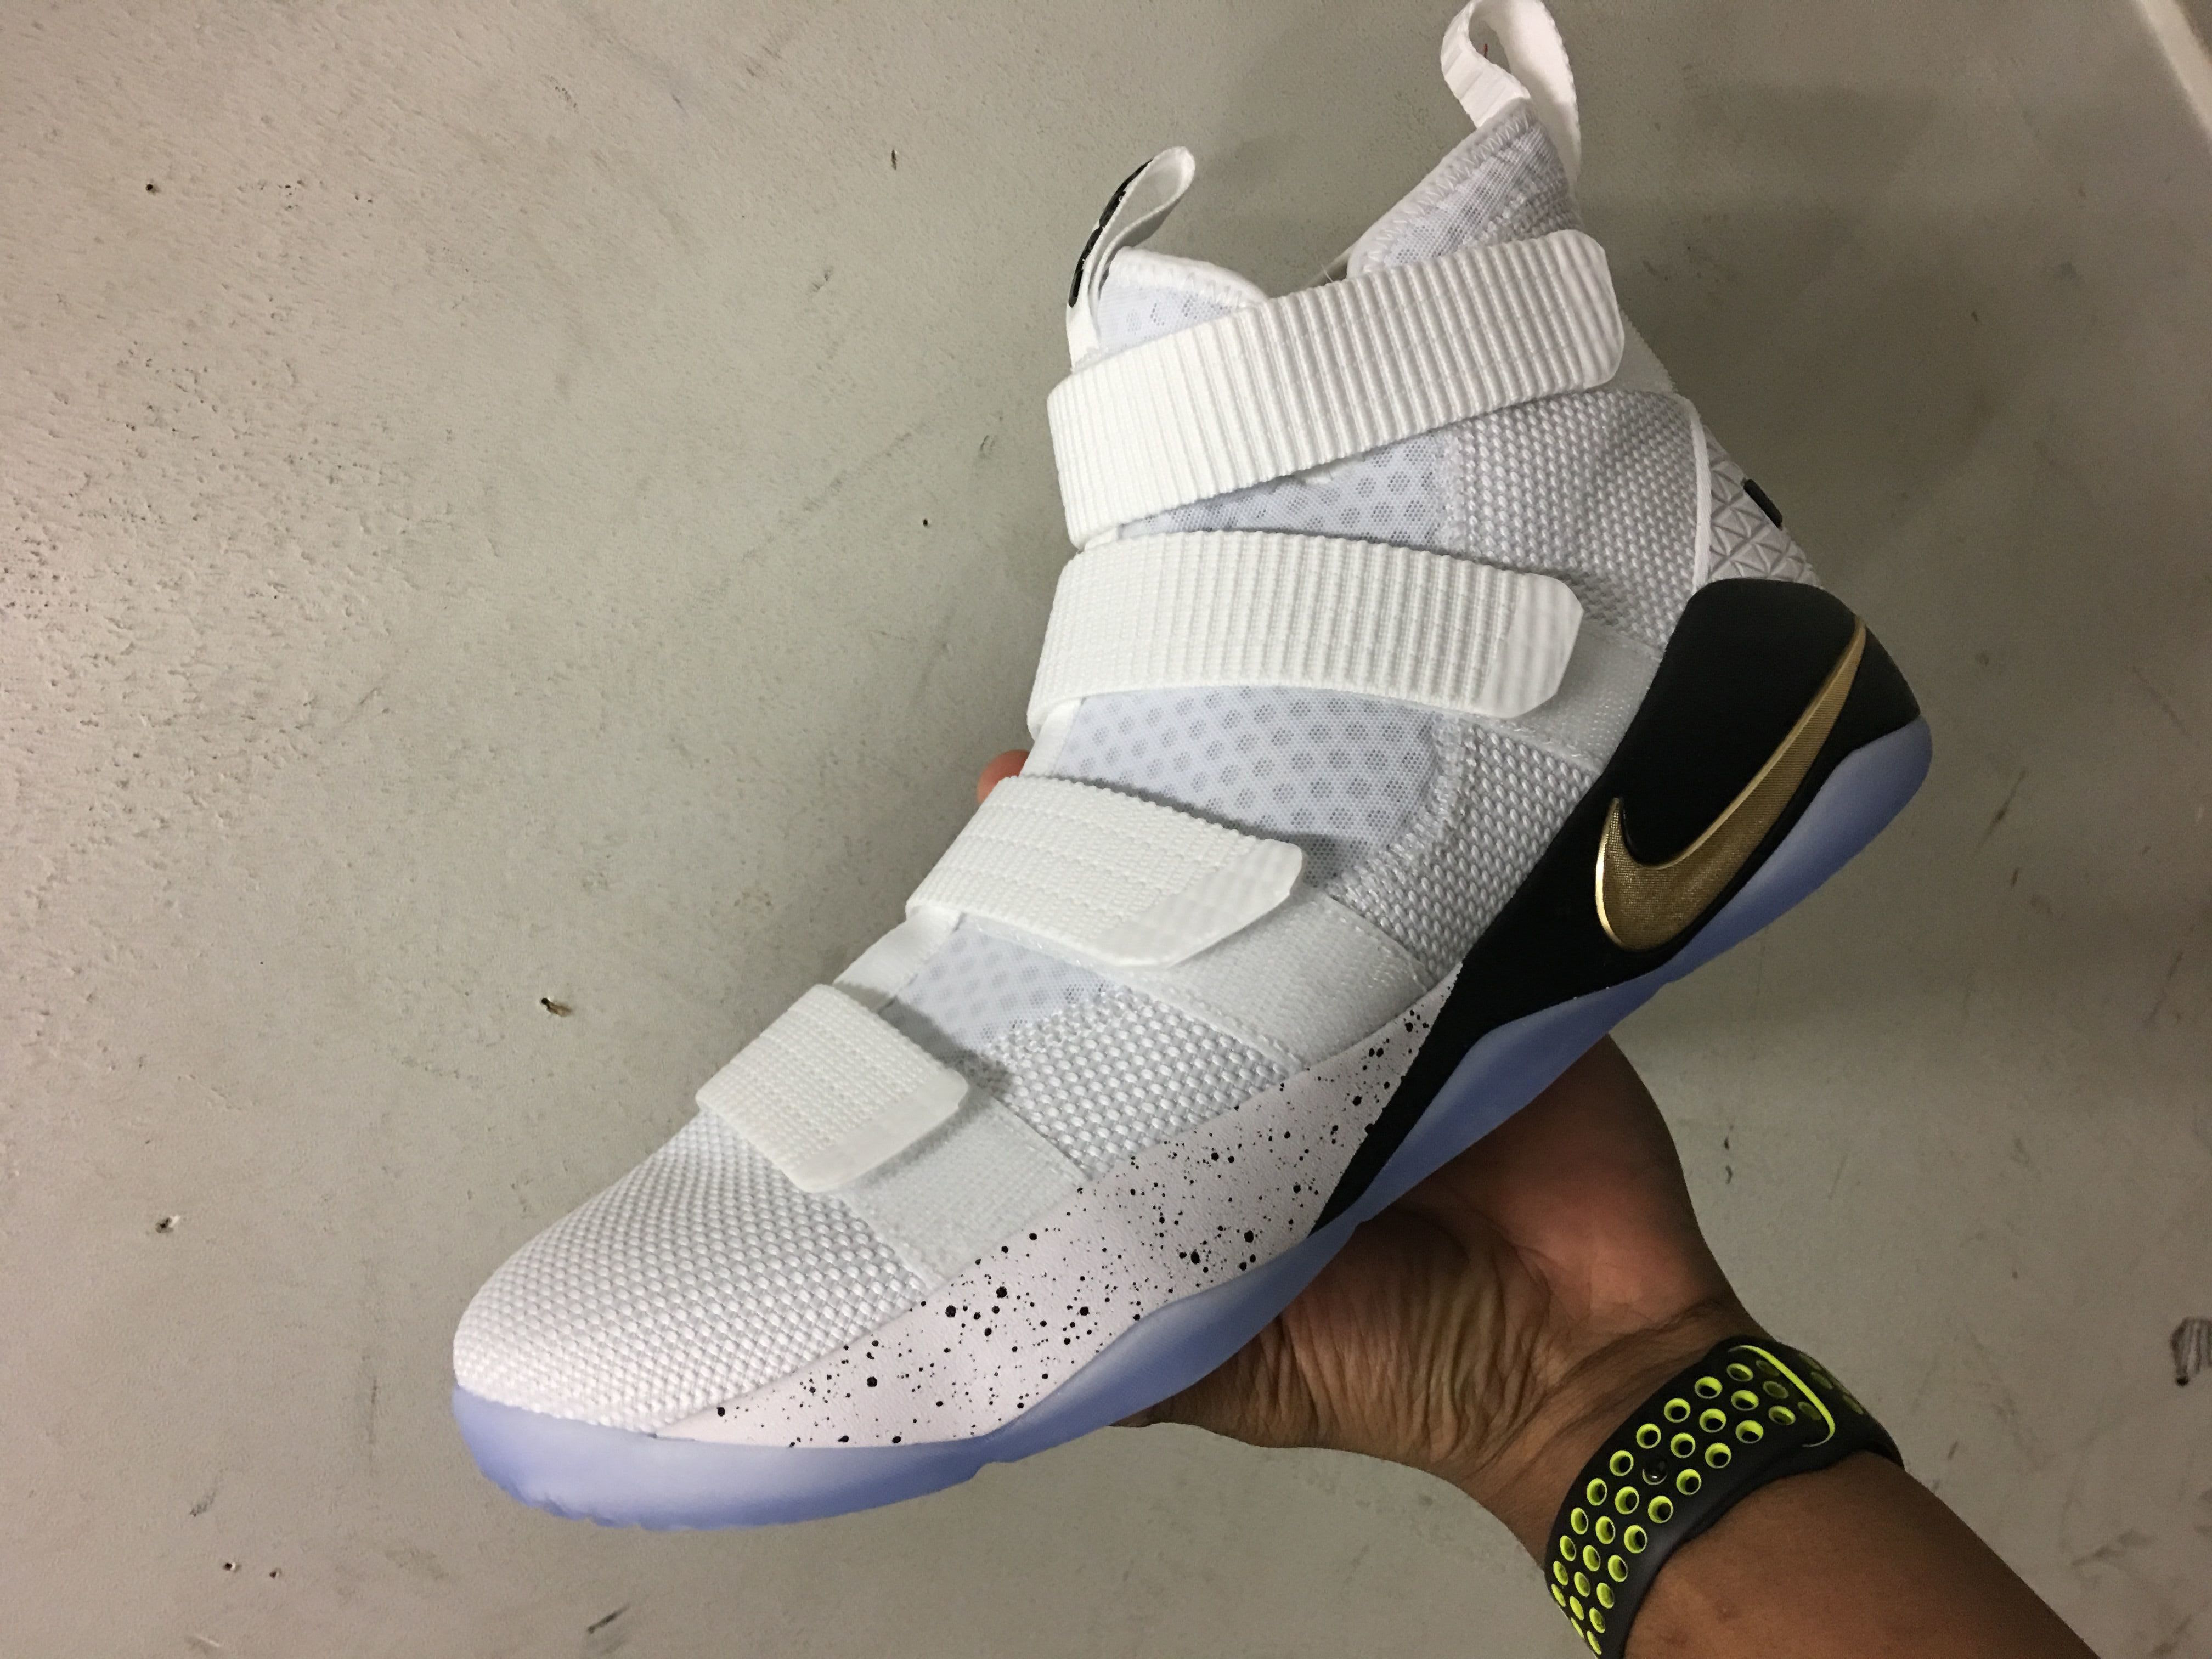 new style a1a4f 9bdd9 nike lebron james collection nike lebron james 11